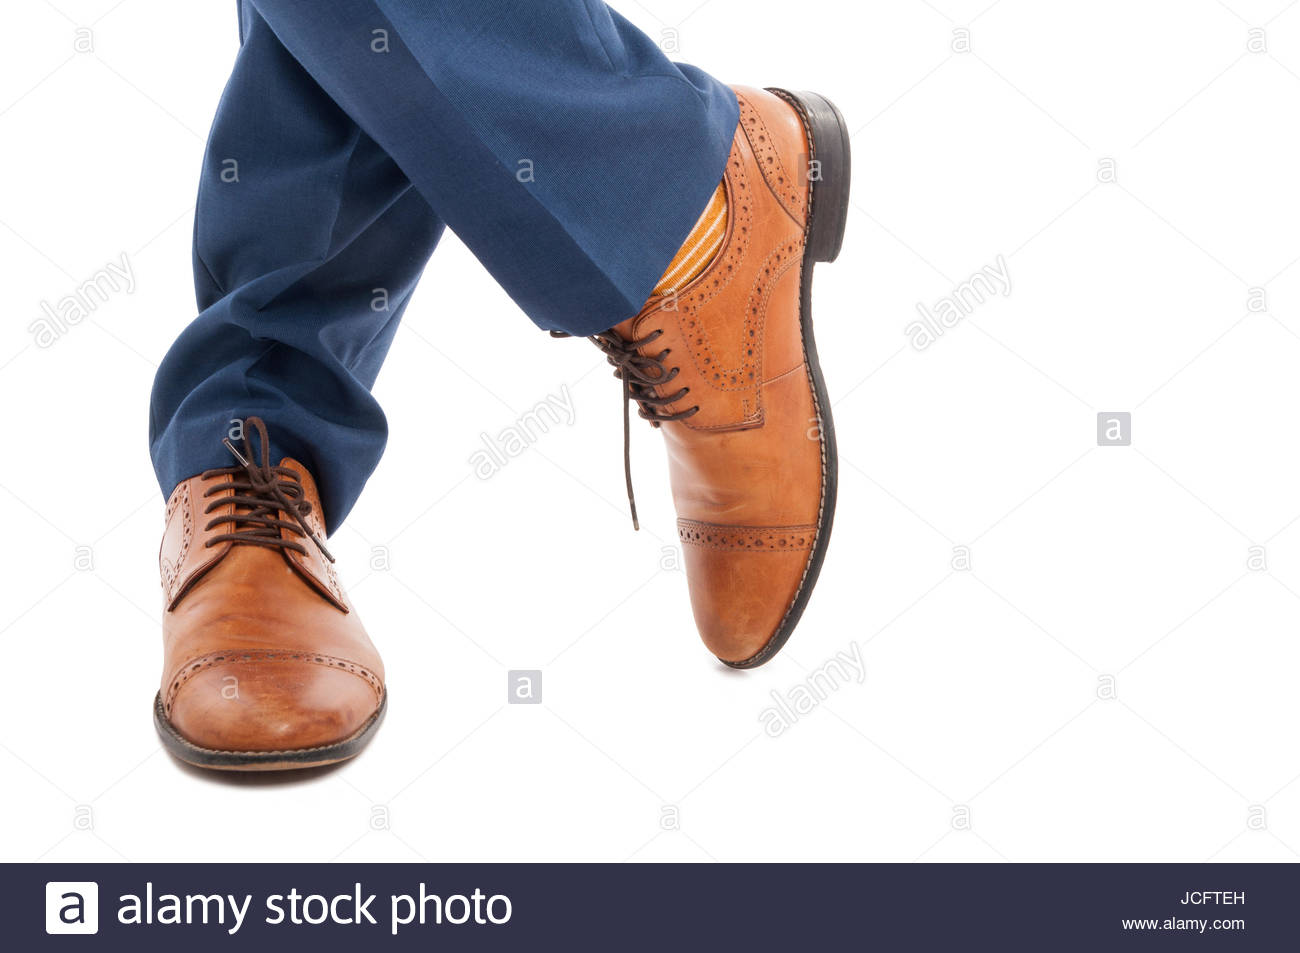 Closeup of stylish male with elegant shoes  posing with legs crossed in close-up view on white background - Stock Image